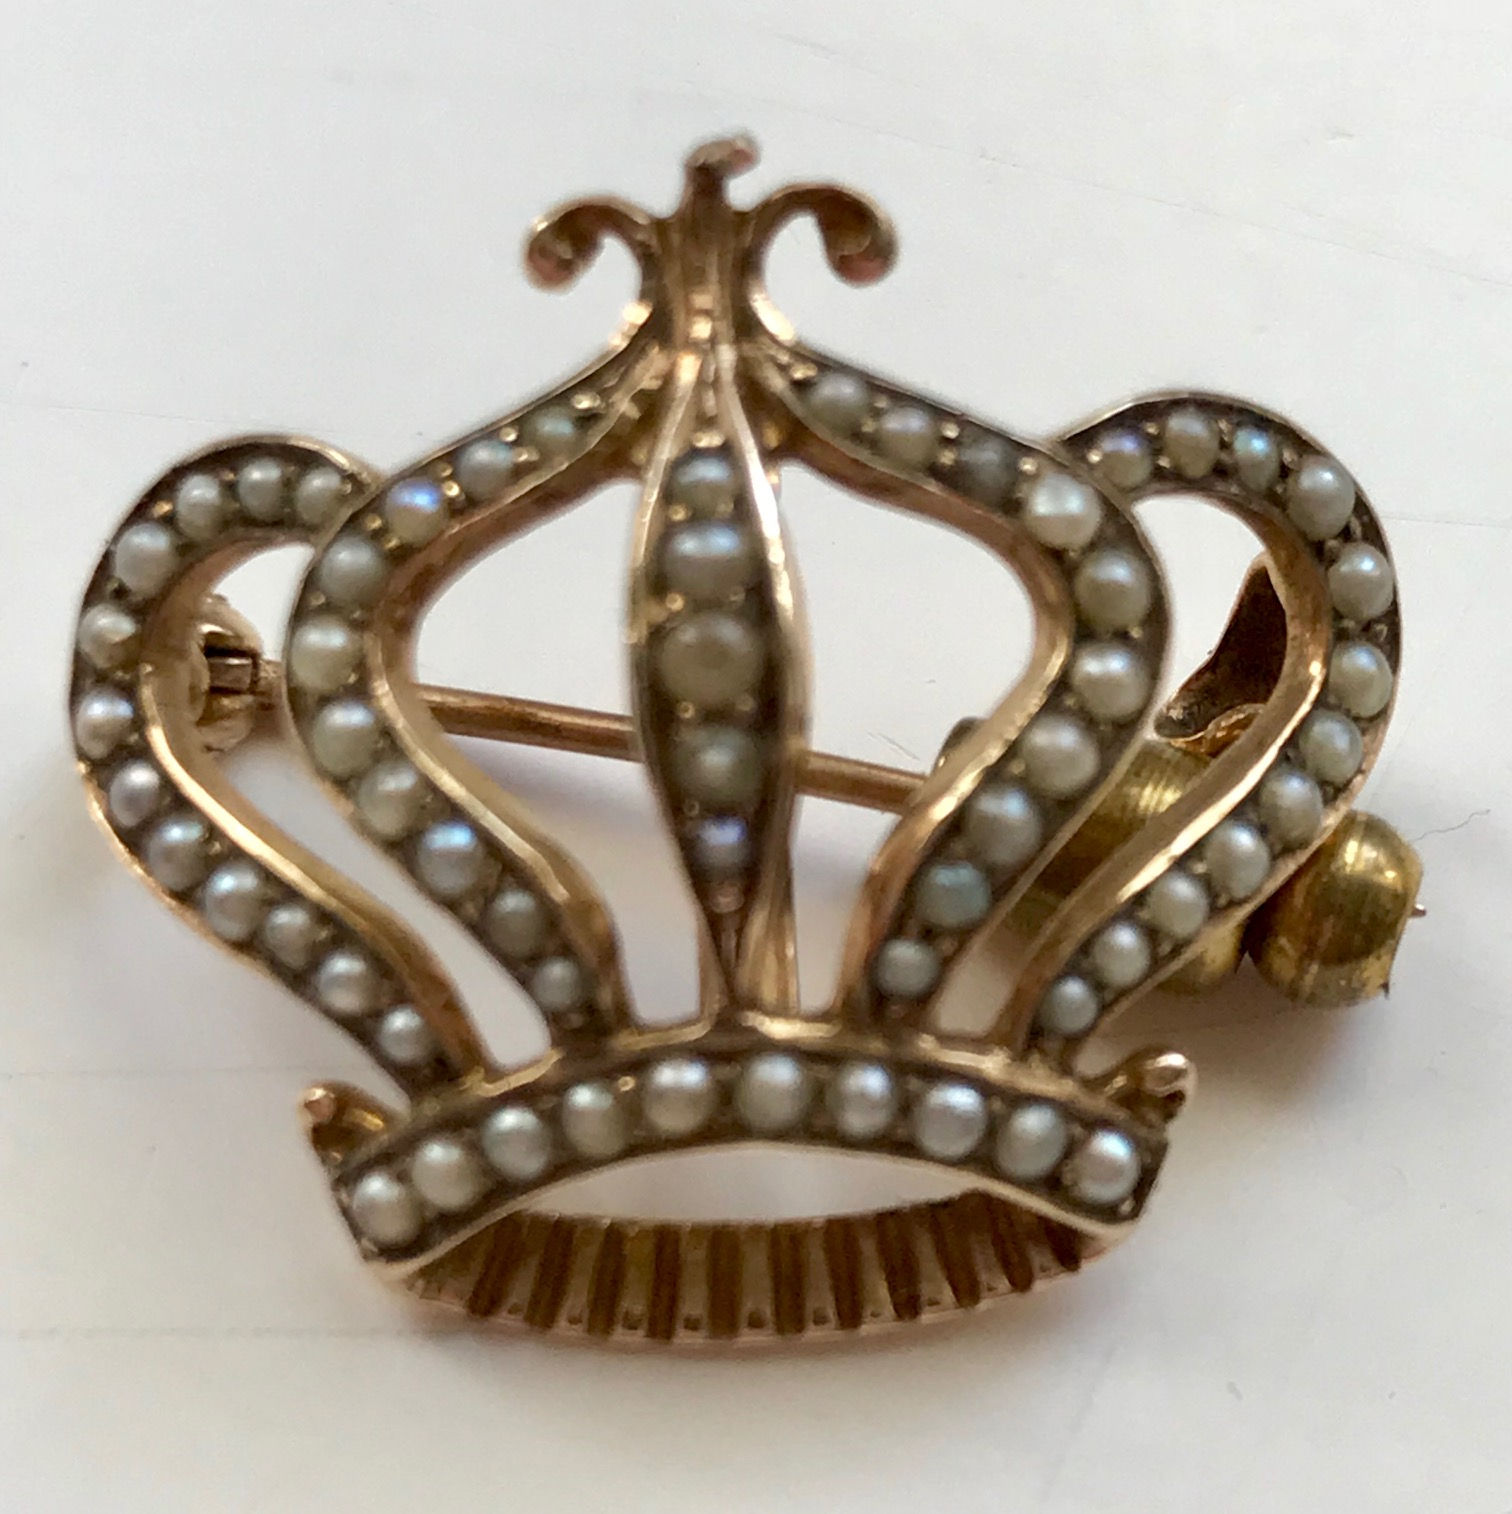 14KT Yellow Gold Crown Brooch